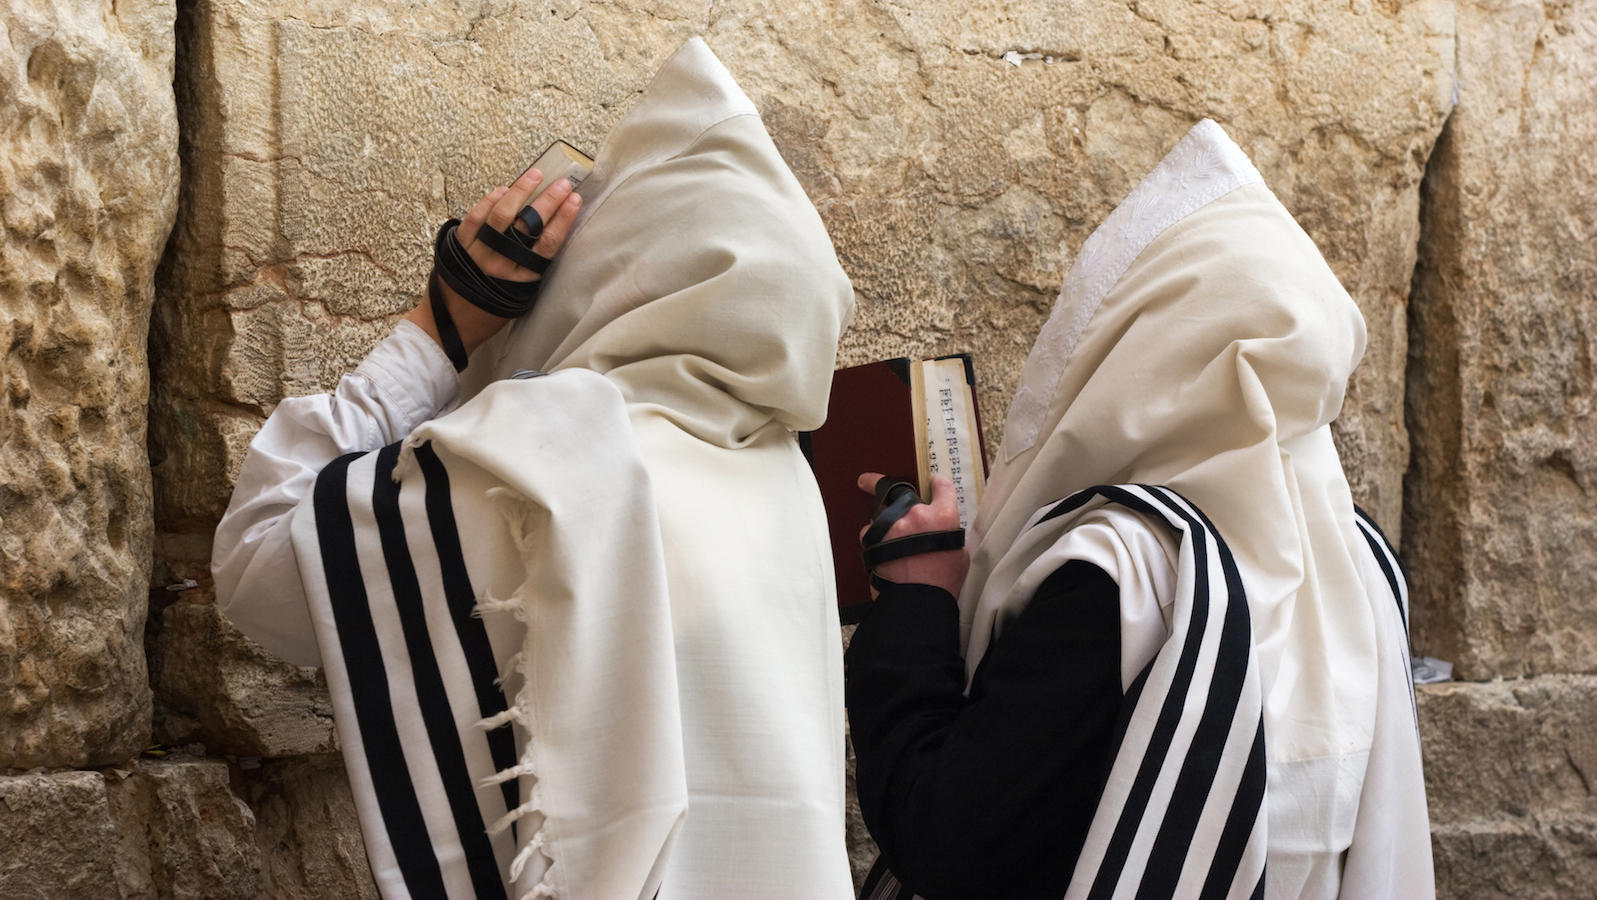 Tallit On People At Kotel